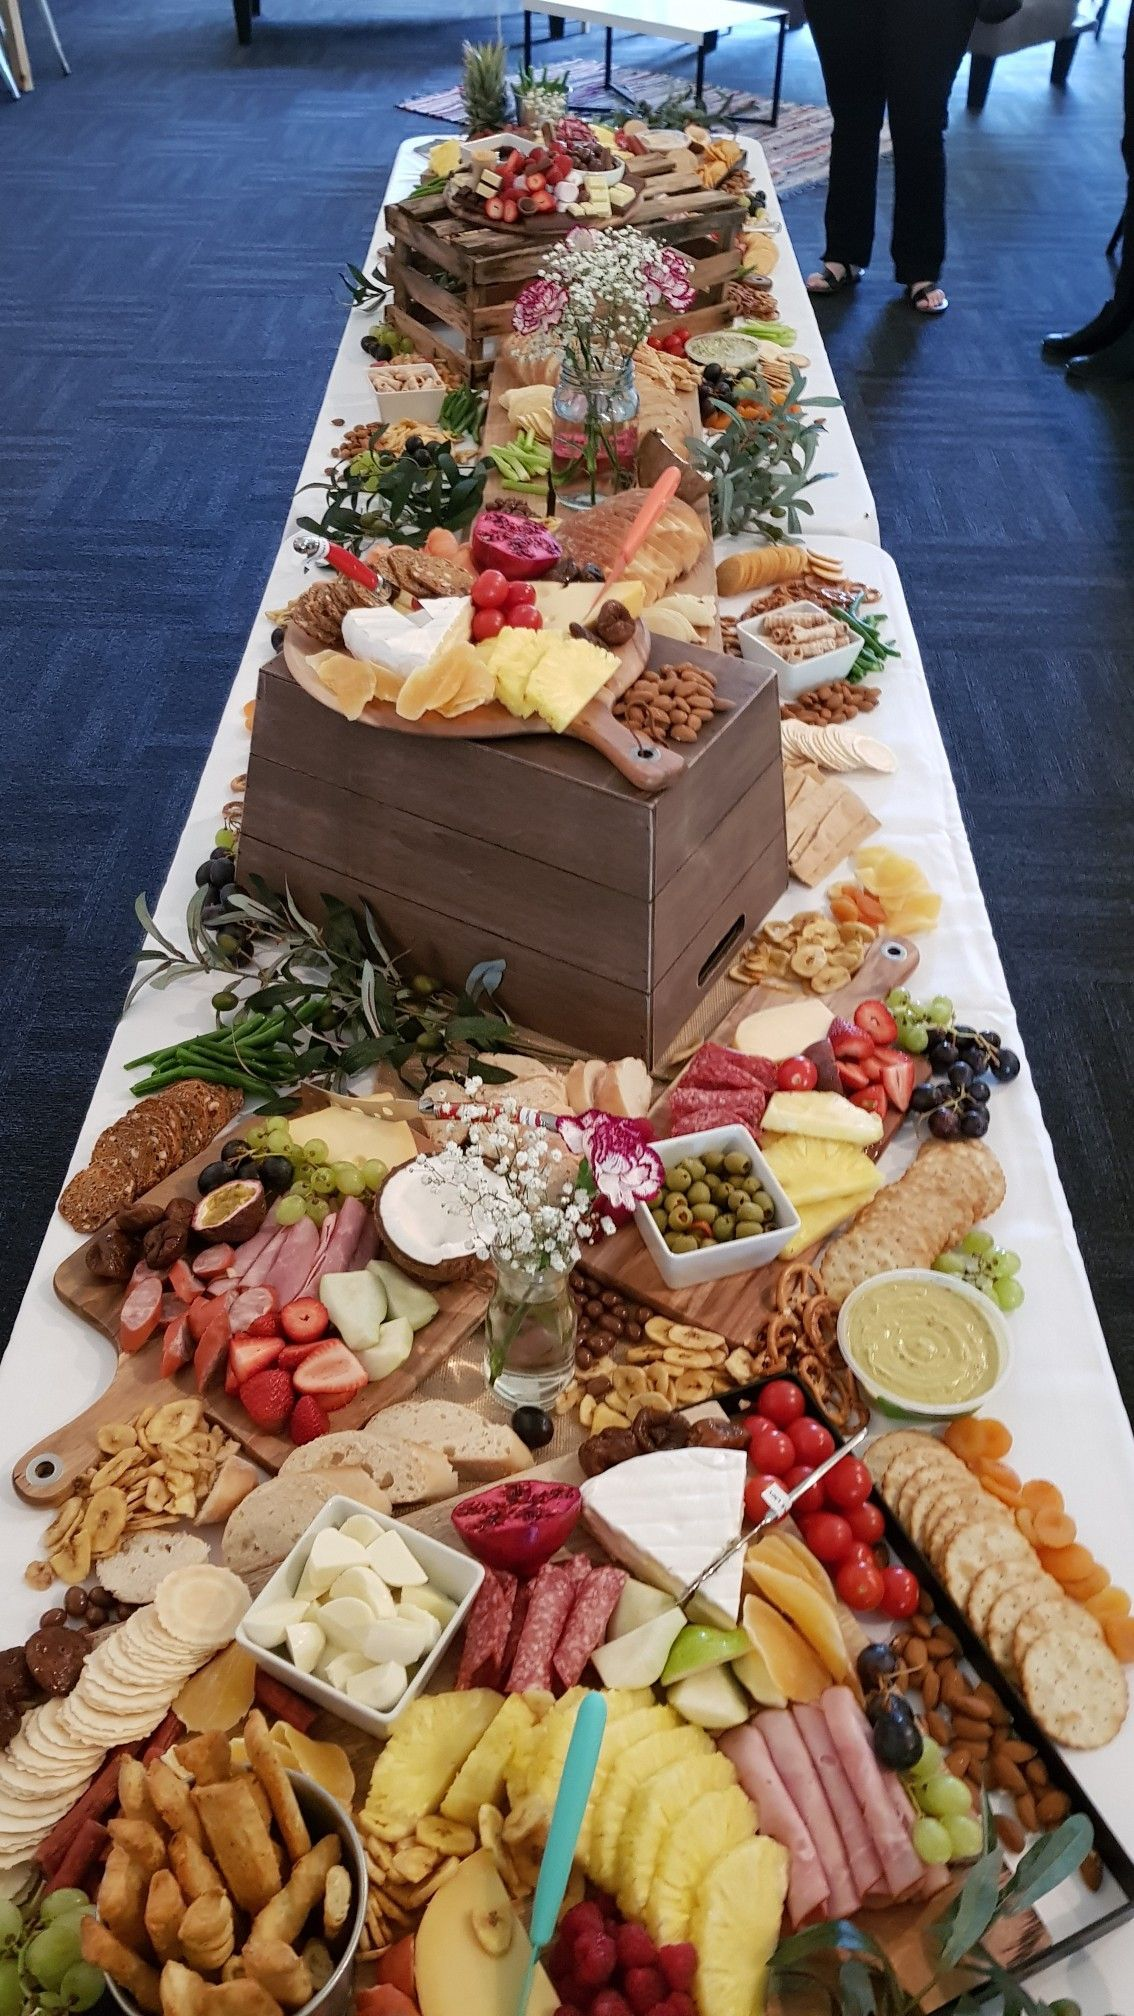 Kids grazing table birthday party | Birthday party food